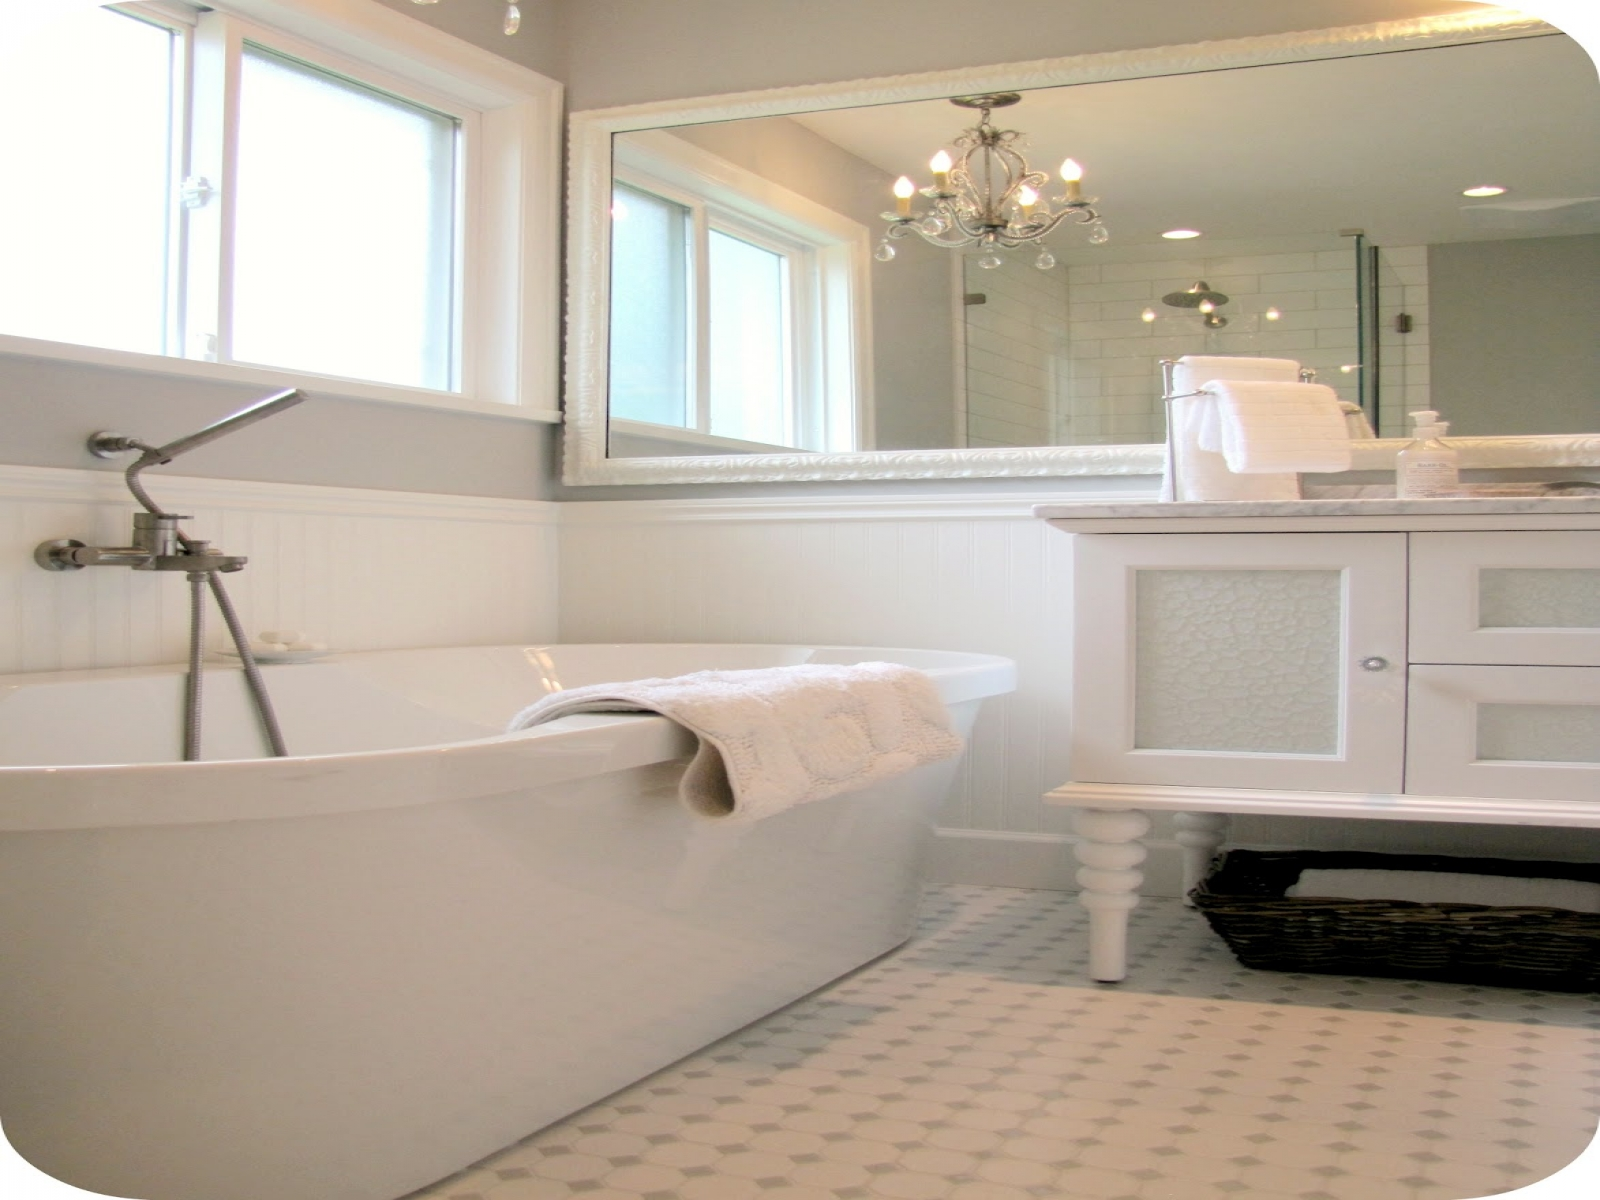 ceramic-flooring-tile-white-standalone-bathtub-glass-window-panel-mirror-with-wooden-frame-small-real-wood-vanity-new-construction-farmhouse-with-bathroom-chandeliers